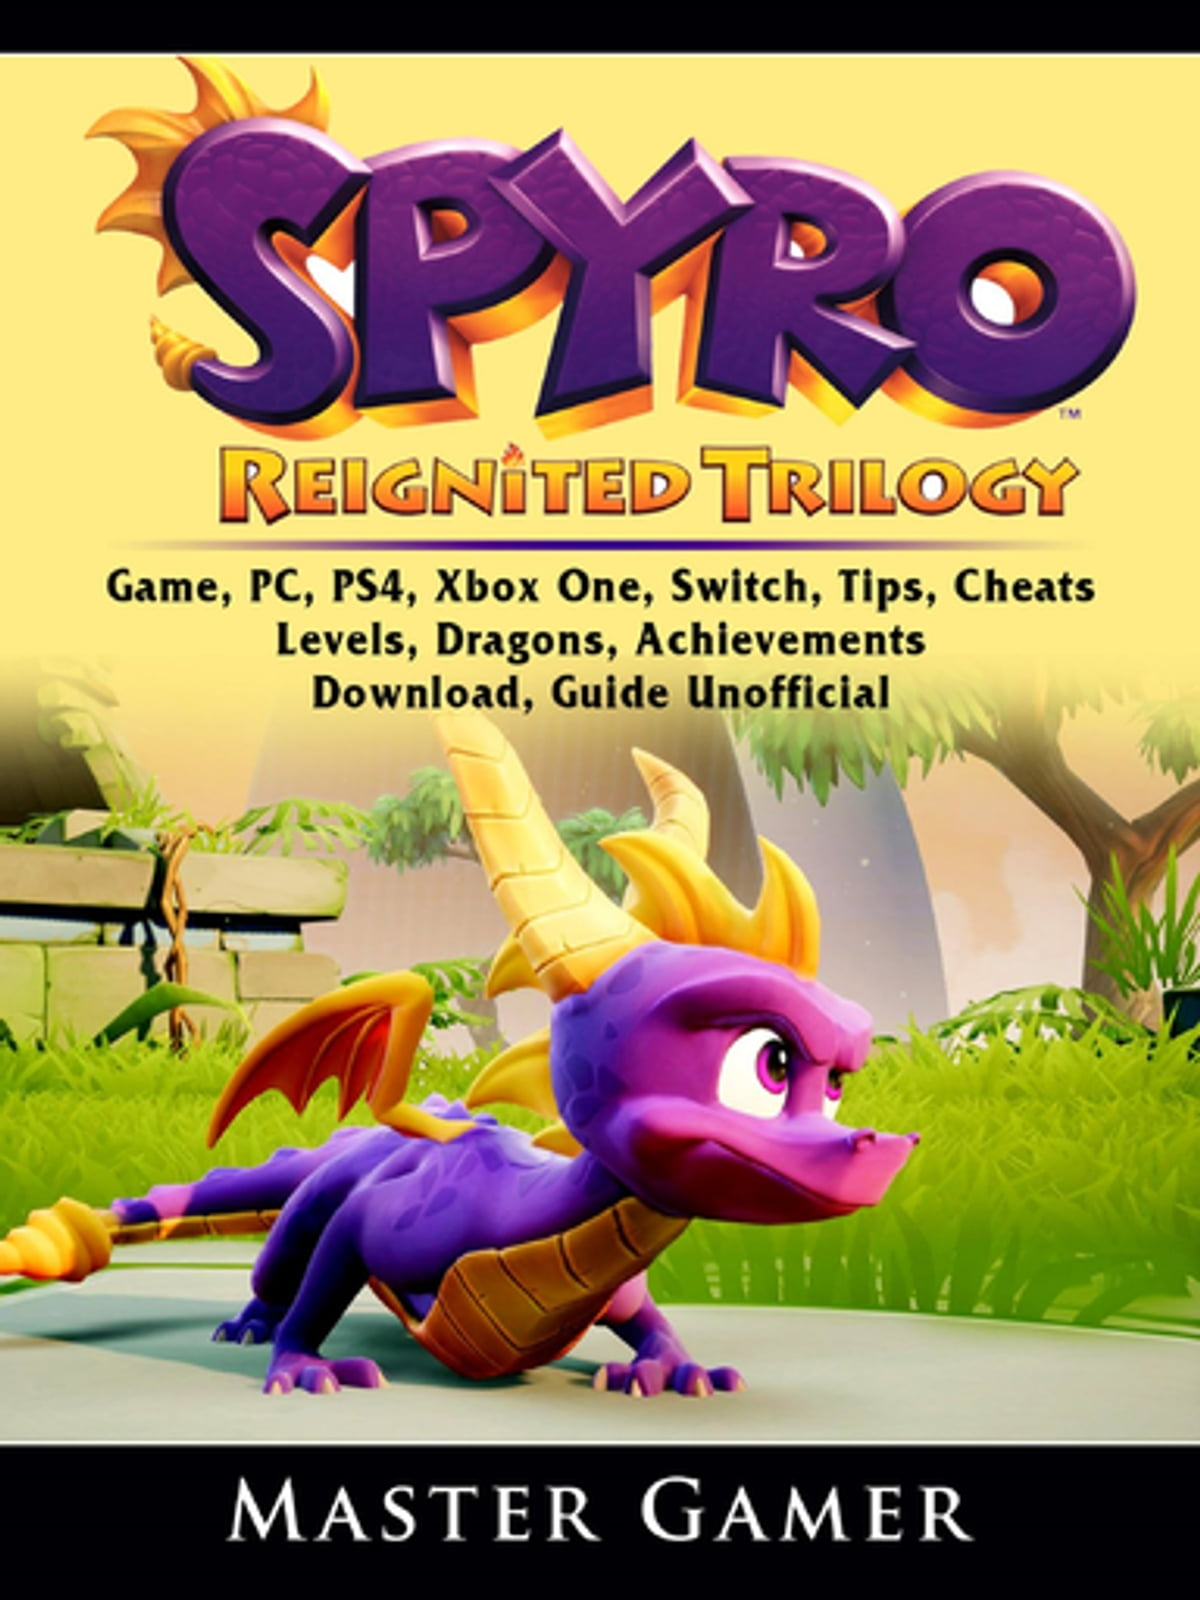 Spyro Reignited Trilogy Game, PC, PS4, Xbox One, Switch, Tips, Cheats,  Levels, Dragons, Achievements, Download, Guide Unofficial ebook by Master  Gamer